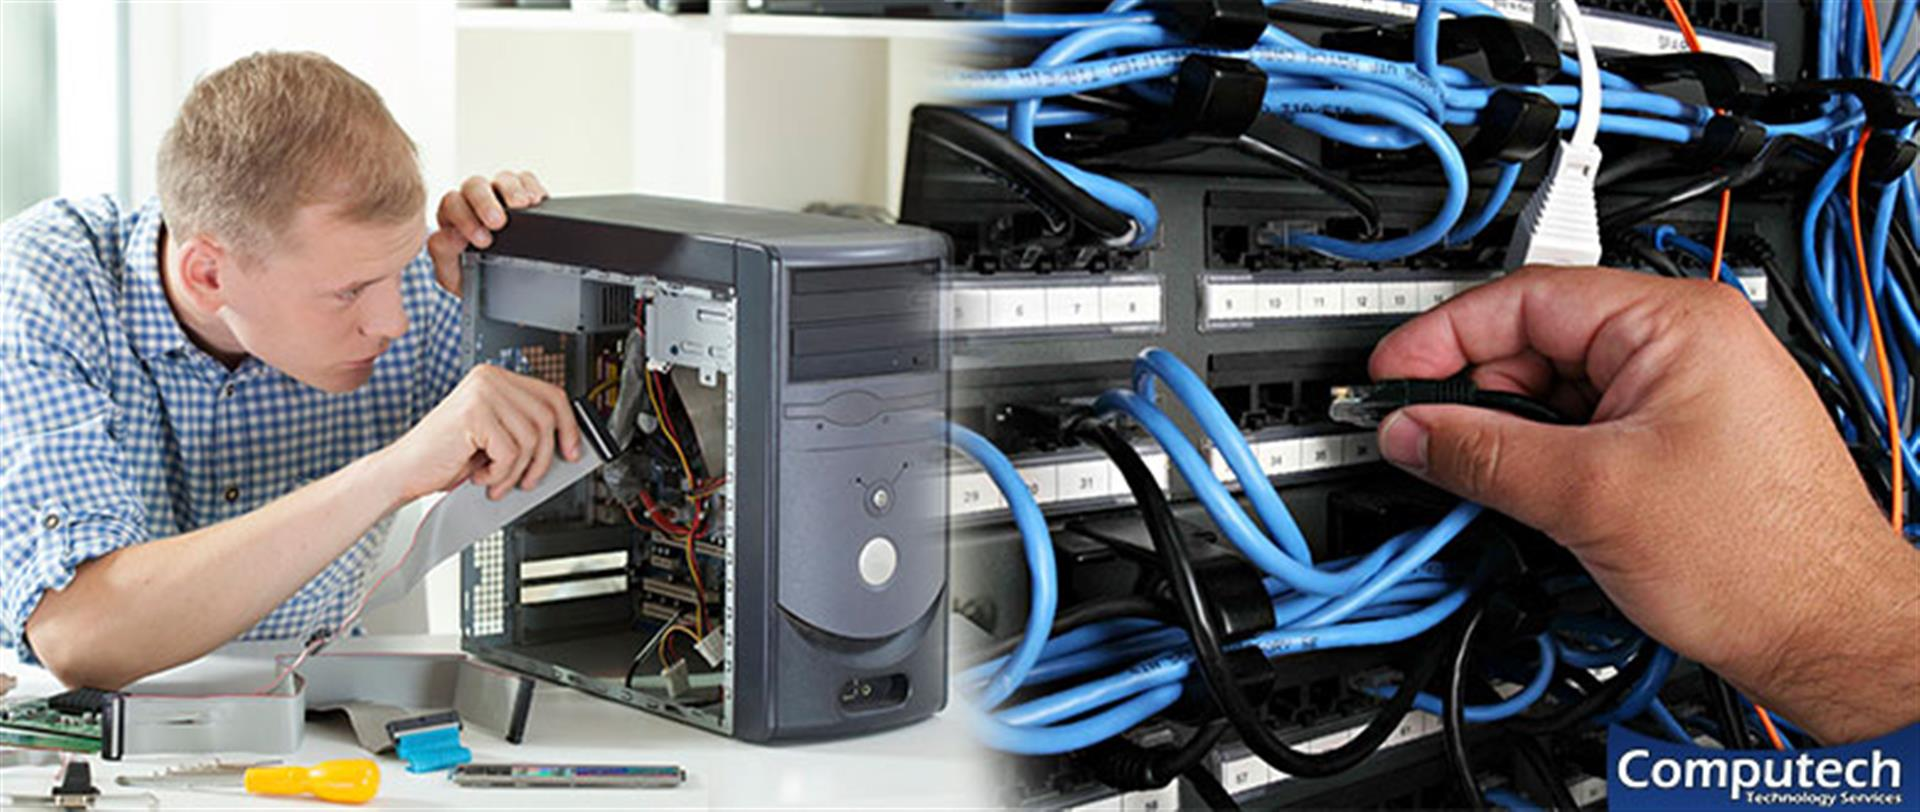 Walthourville Georgia Onsite Computer & Printer Repairs, Networking, Voice & Data Cabling Solutions